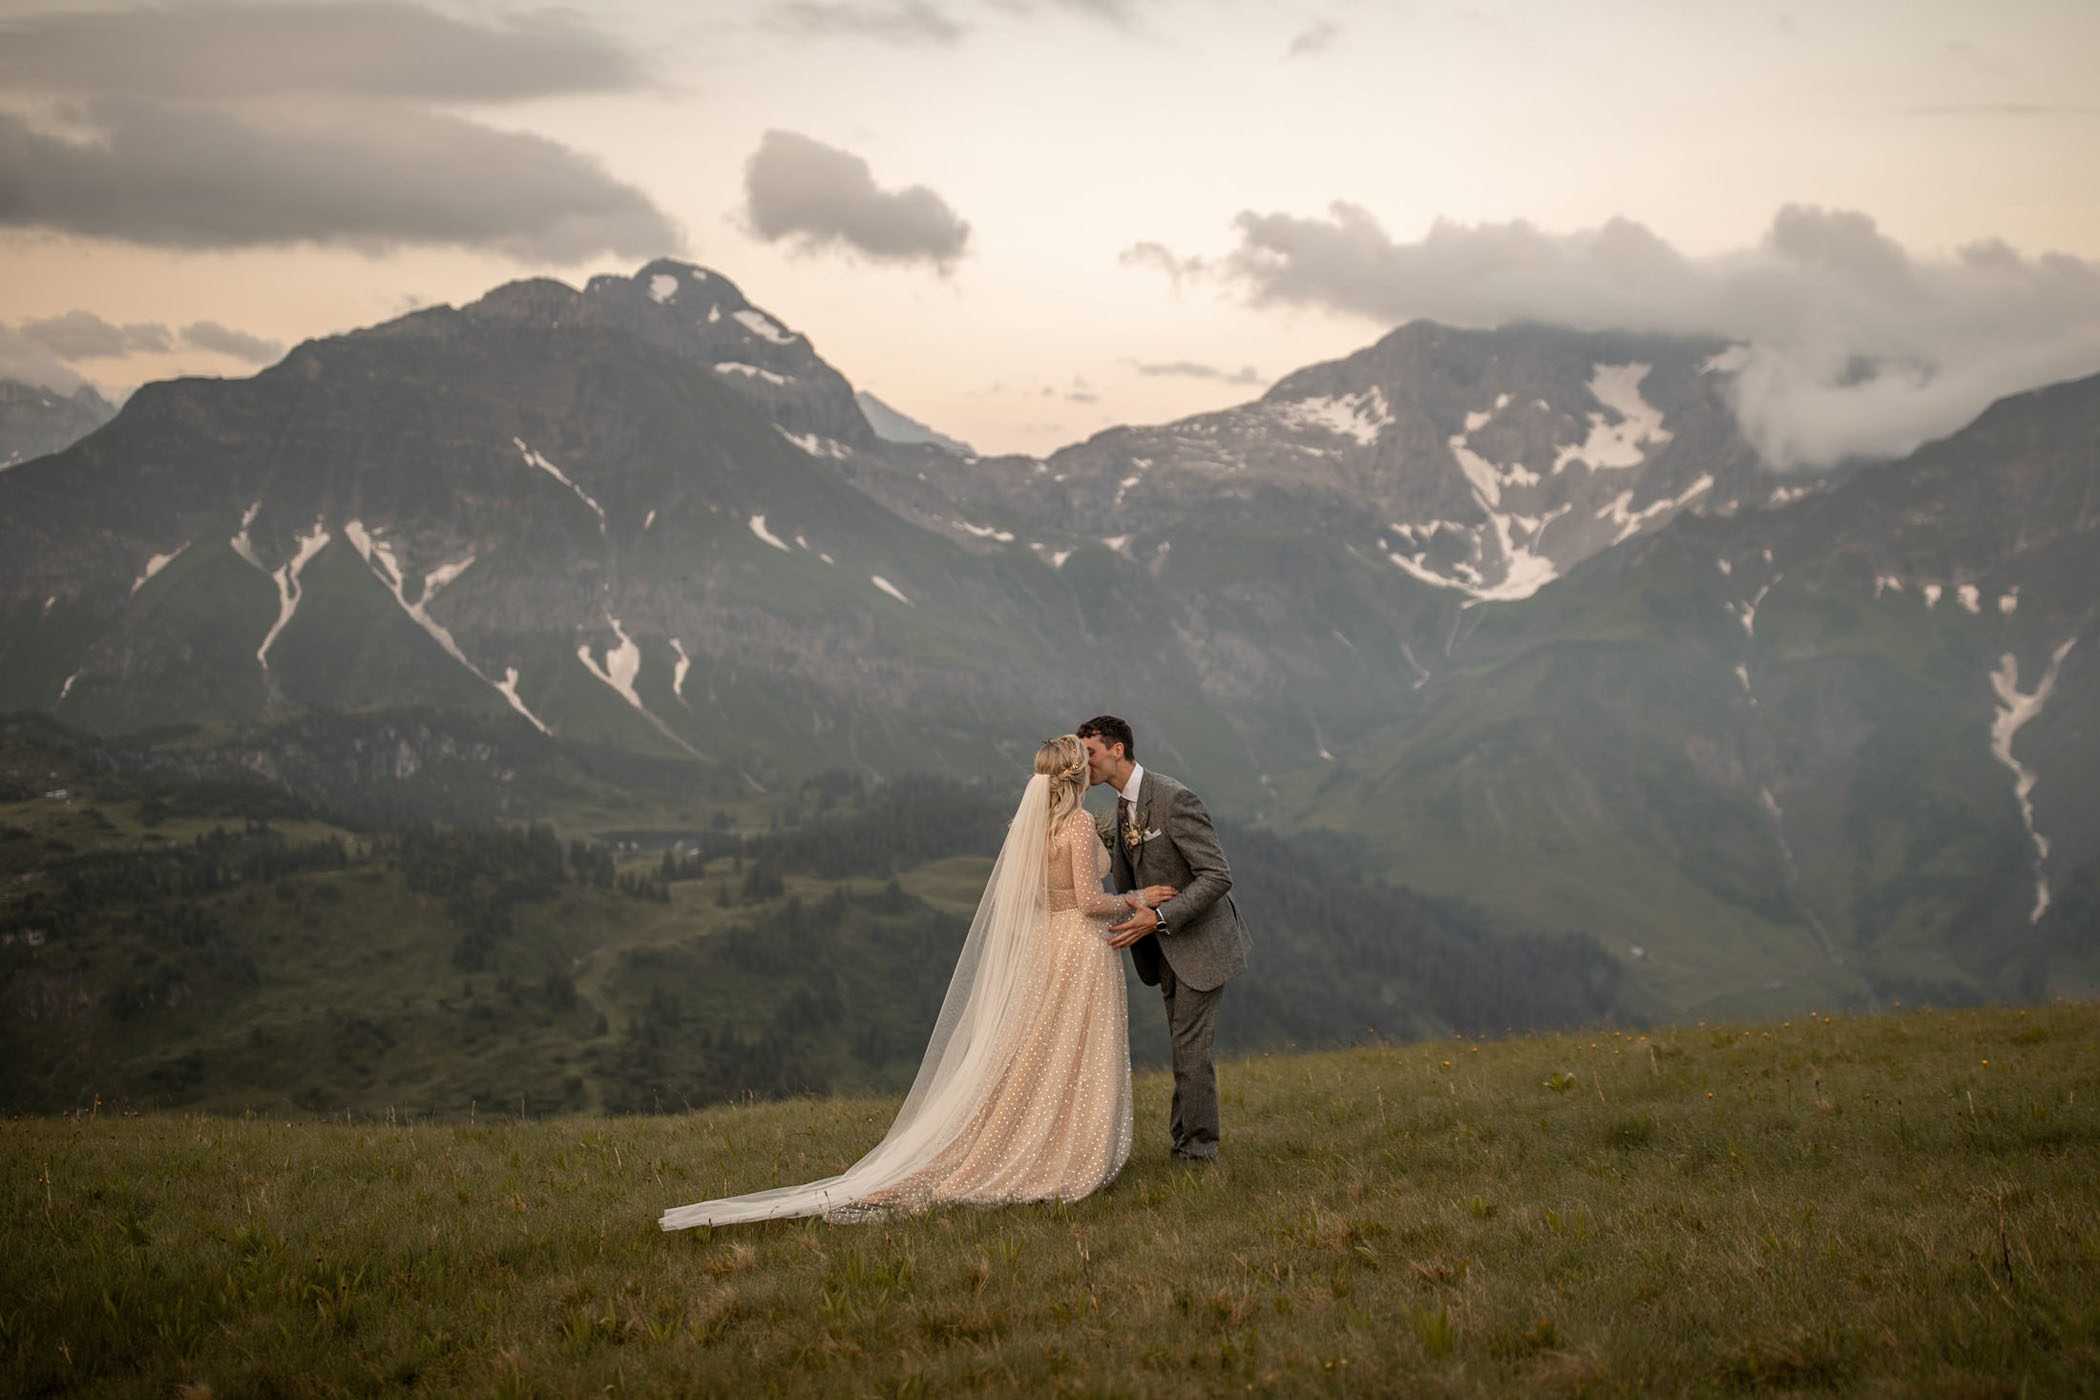 Bride in gold dress kisses her groom in front of the mountains